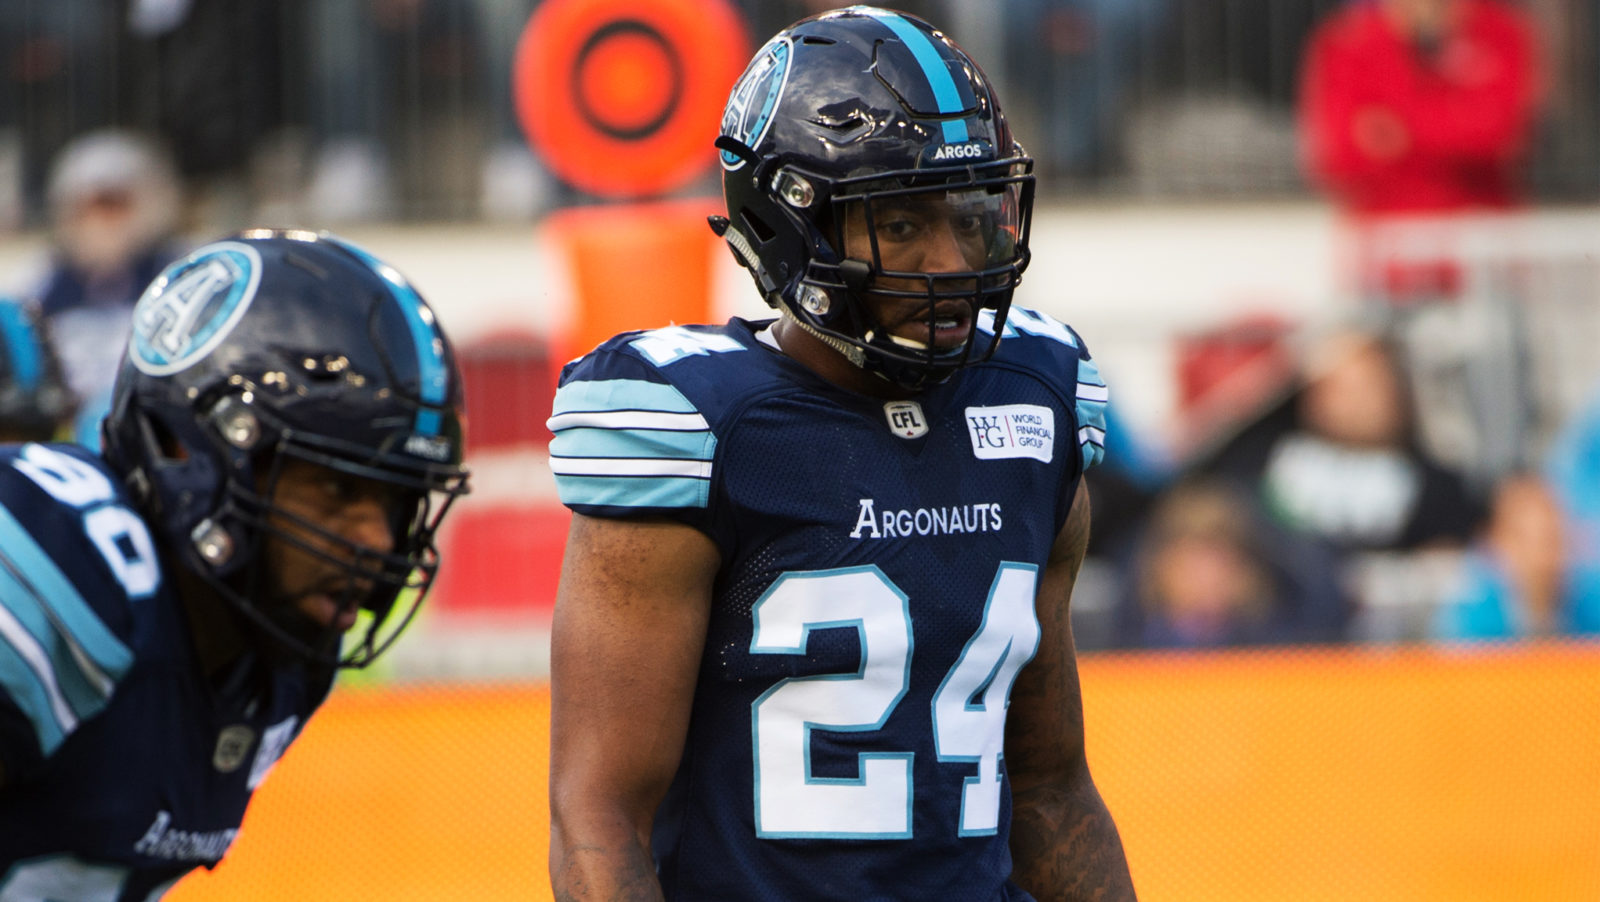 Ticats sign former Argo Justin Tuggle - CFL.ca c60e913c7